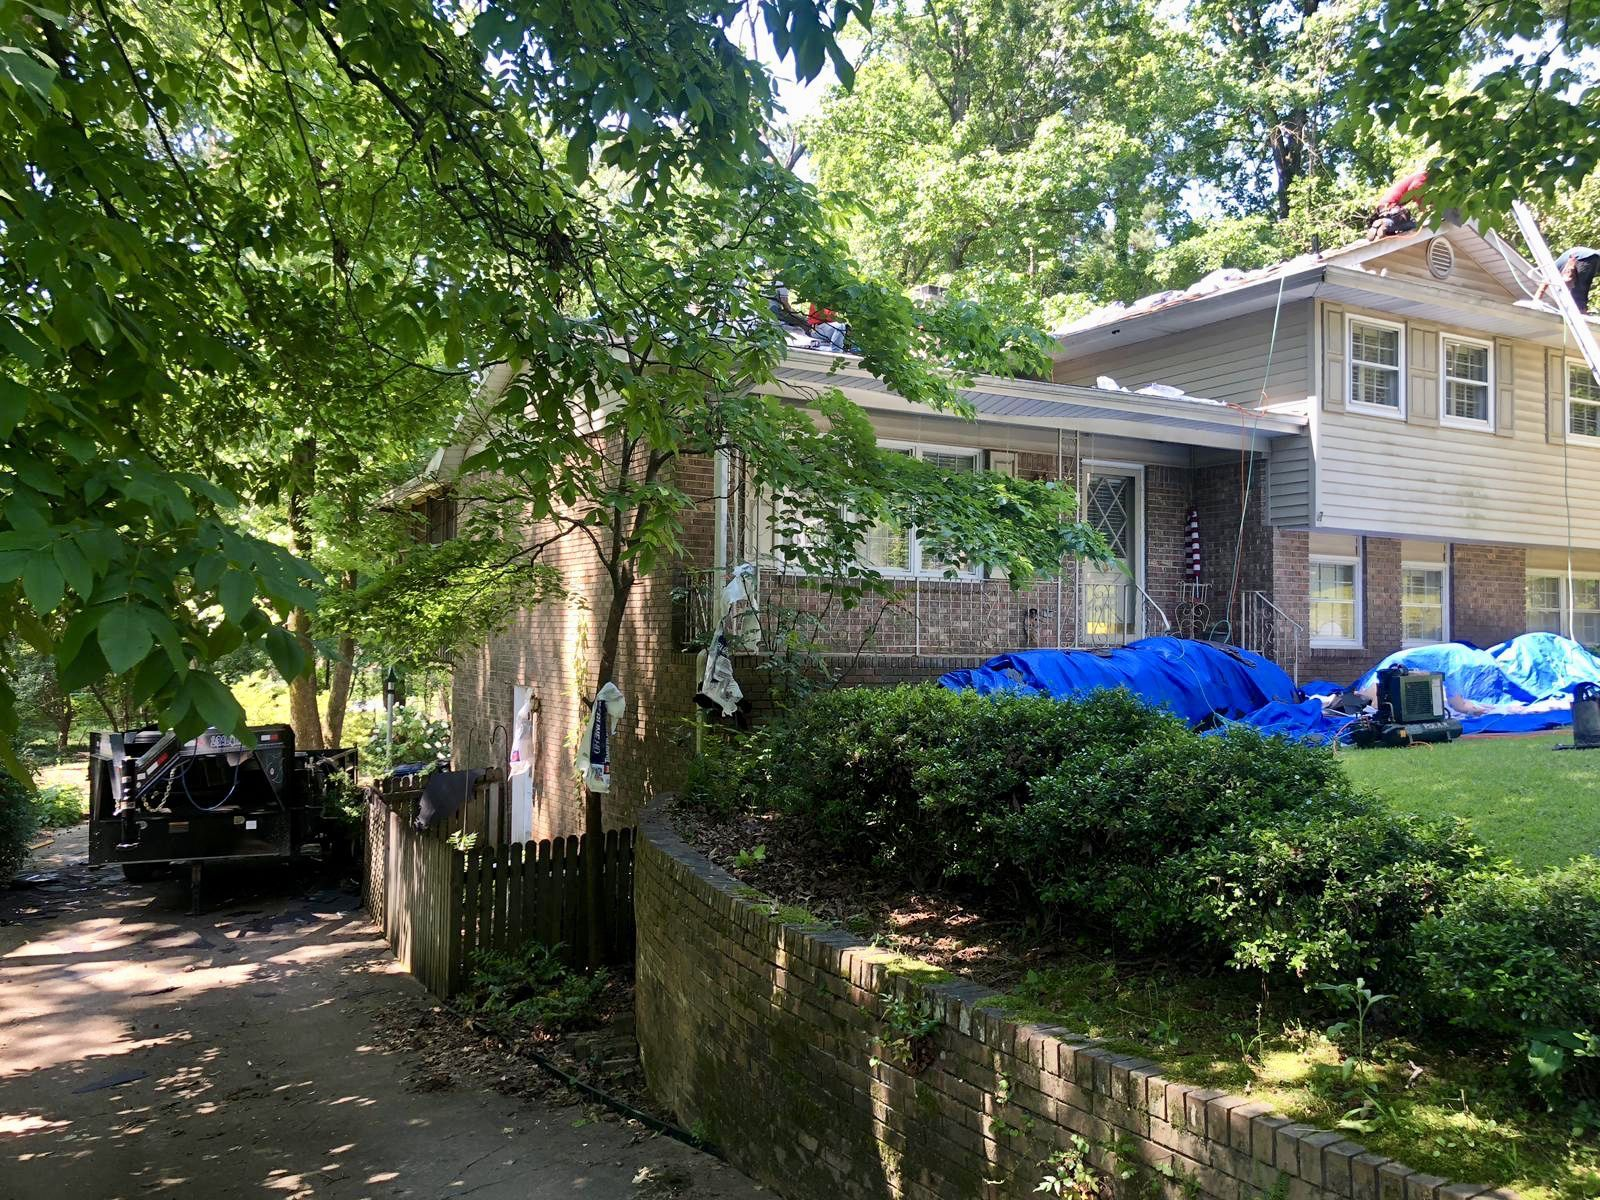 The Blue Angels Roofing Crew Is Replacing A Roof In Hoover Our Team Is Happy To Guide Each Customer Through Every Step Roofing Roofing Contractors Roof Repair